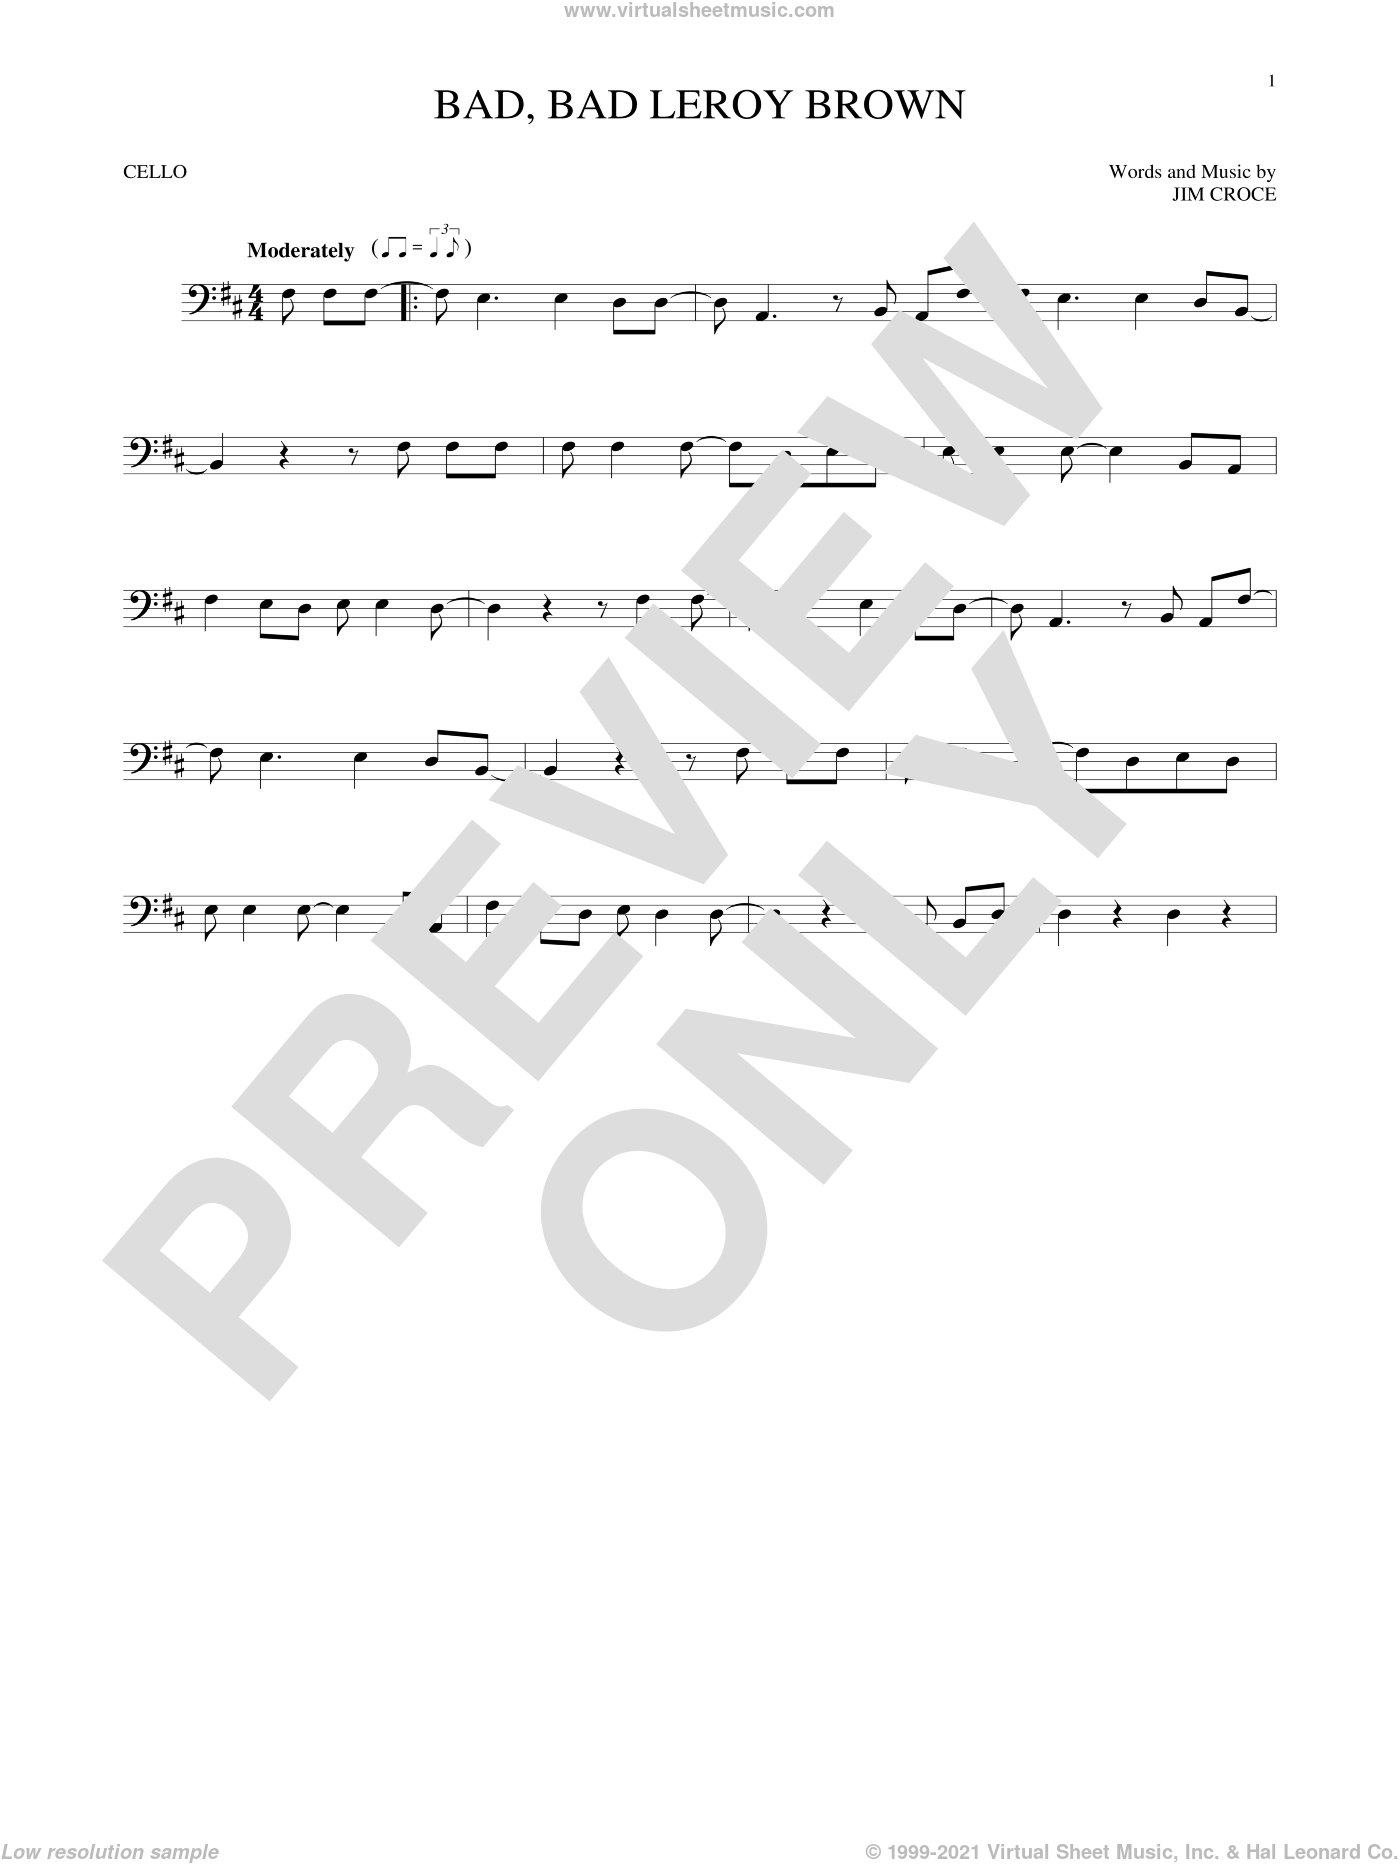 Bad, Bad Leroy Brown sheet music for cello solo by Jim Croce, intermediate skill level